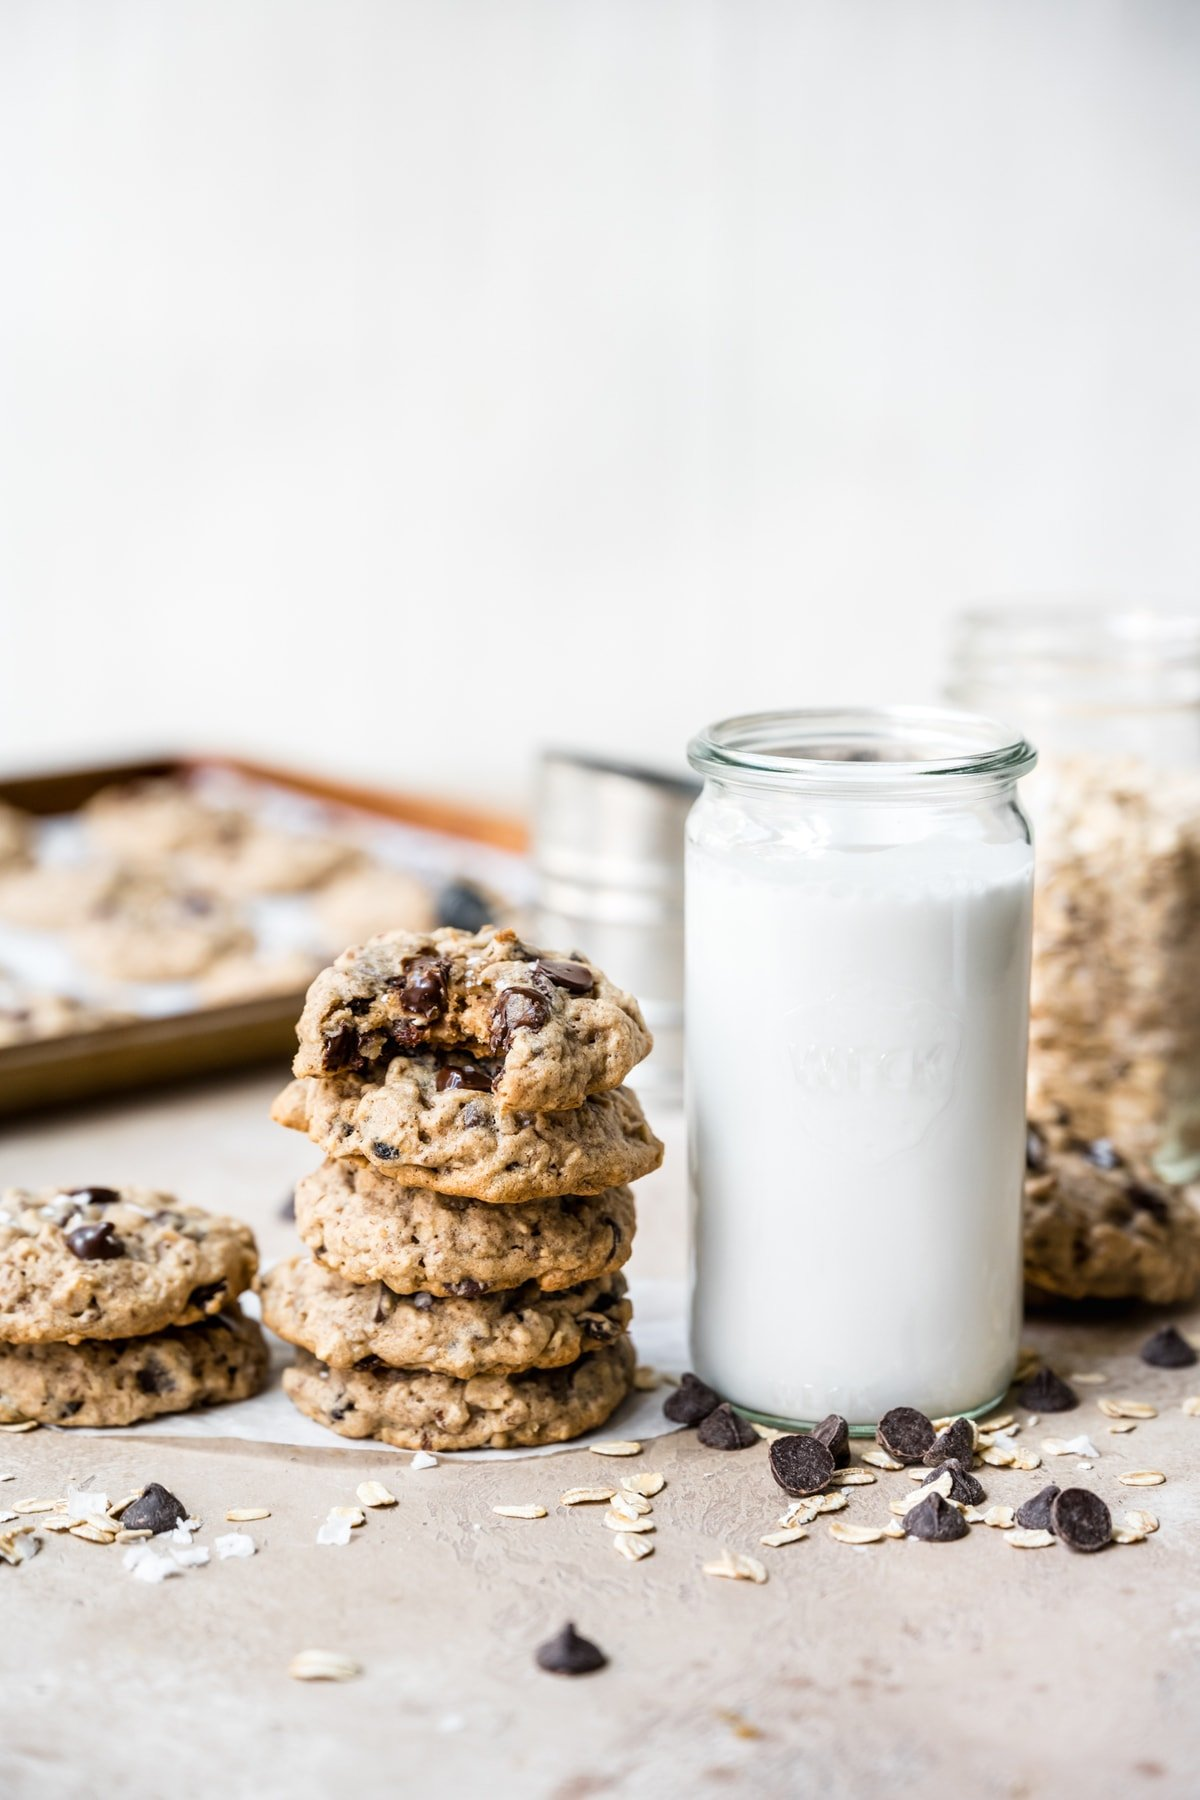 side view of stack of oatmeal raisin chocolate chip cookies next to a glass of milk